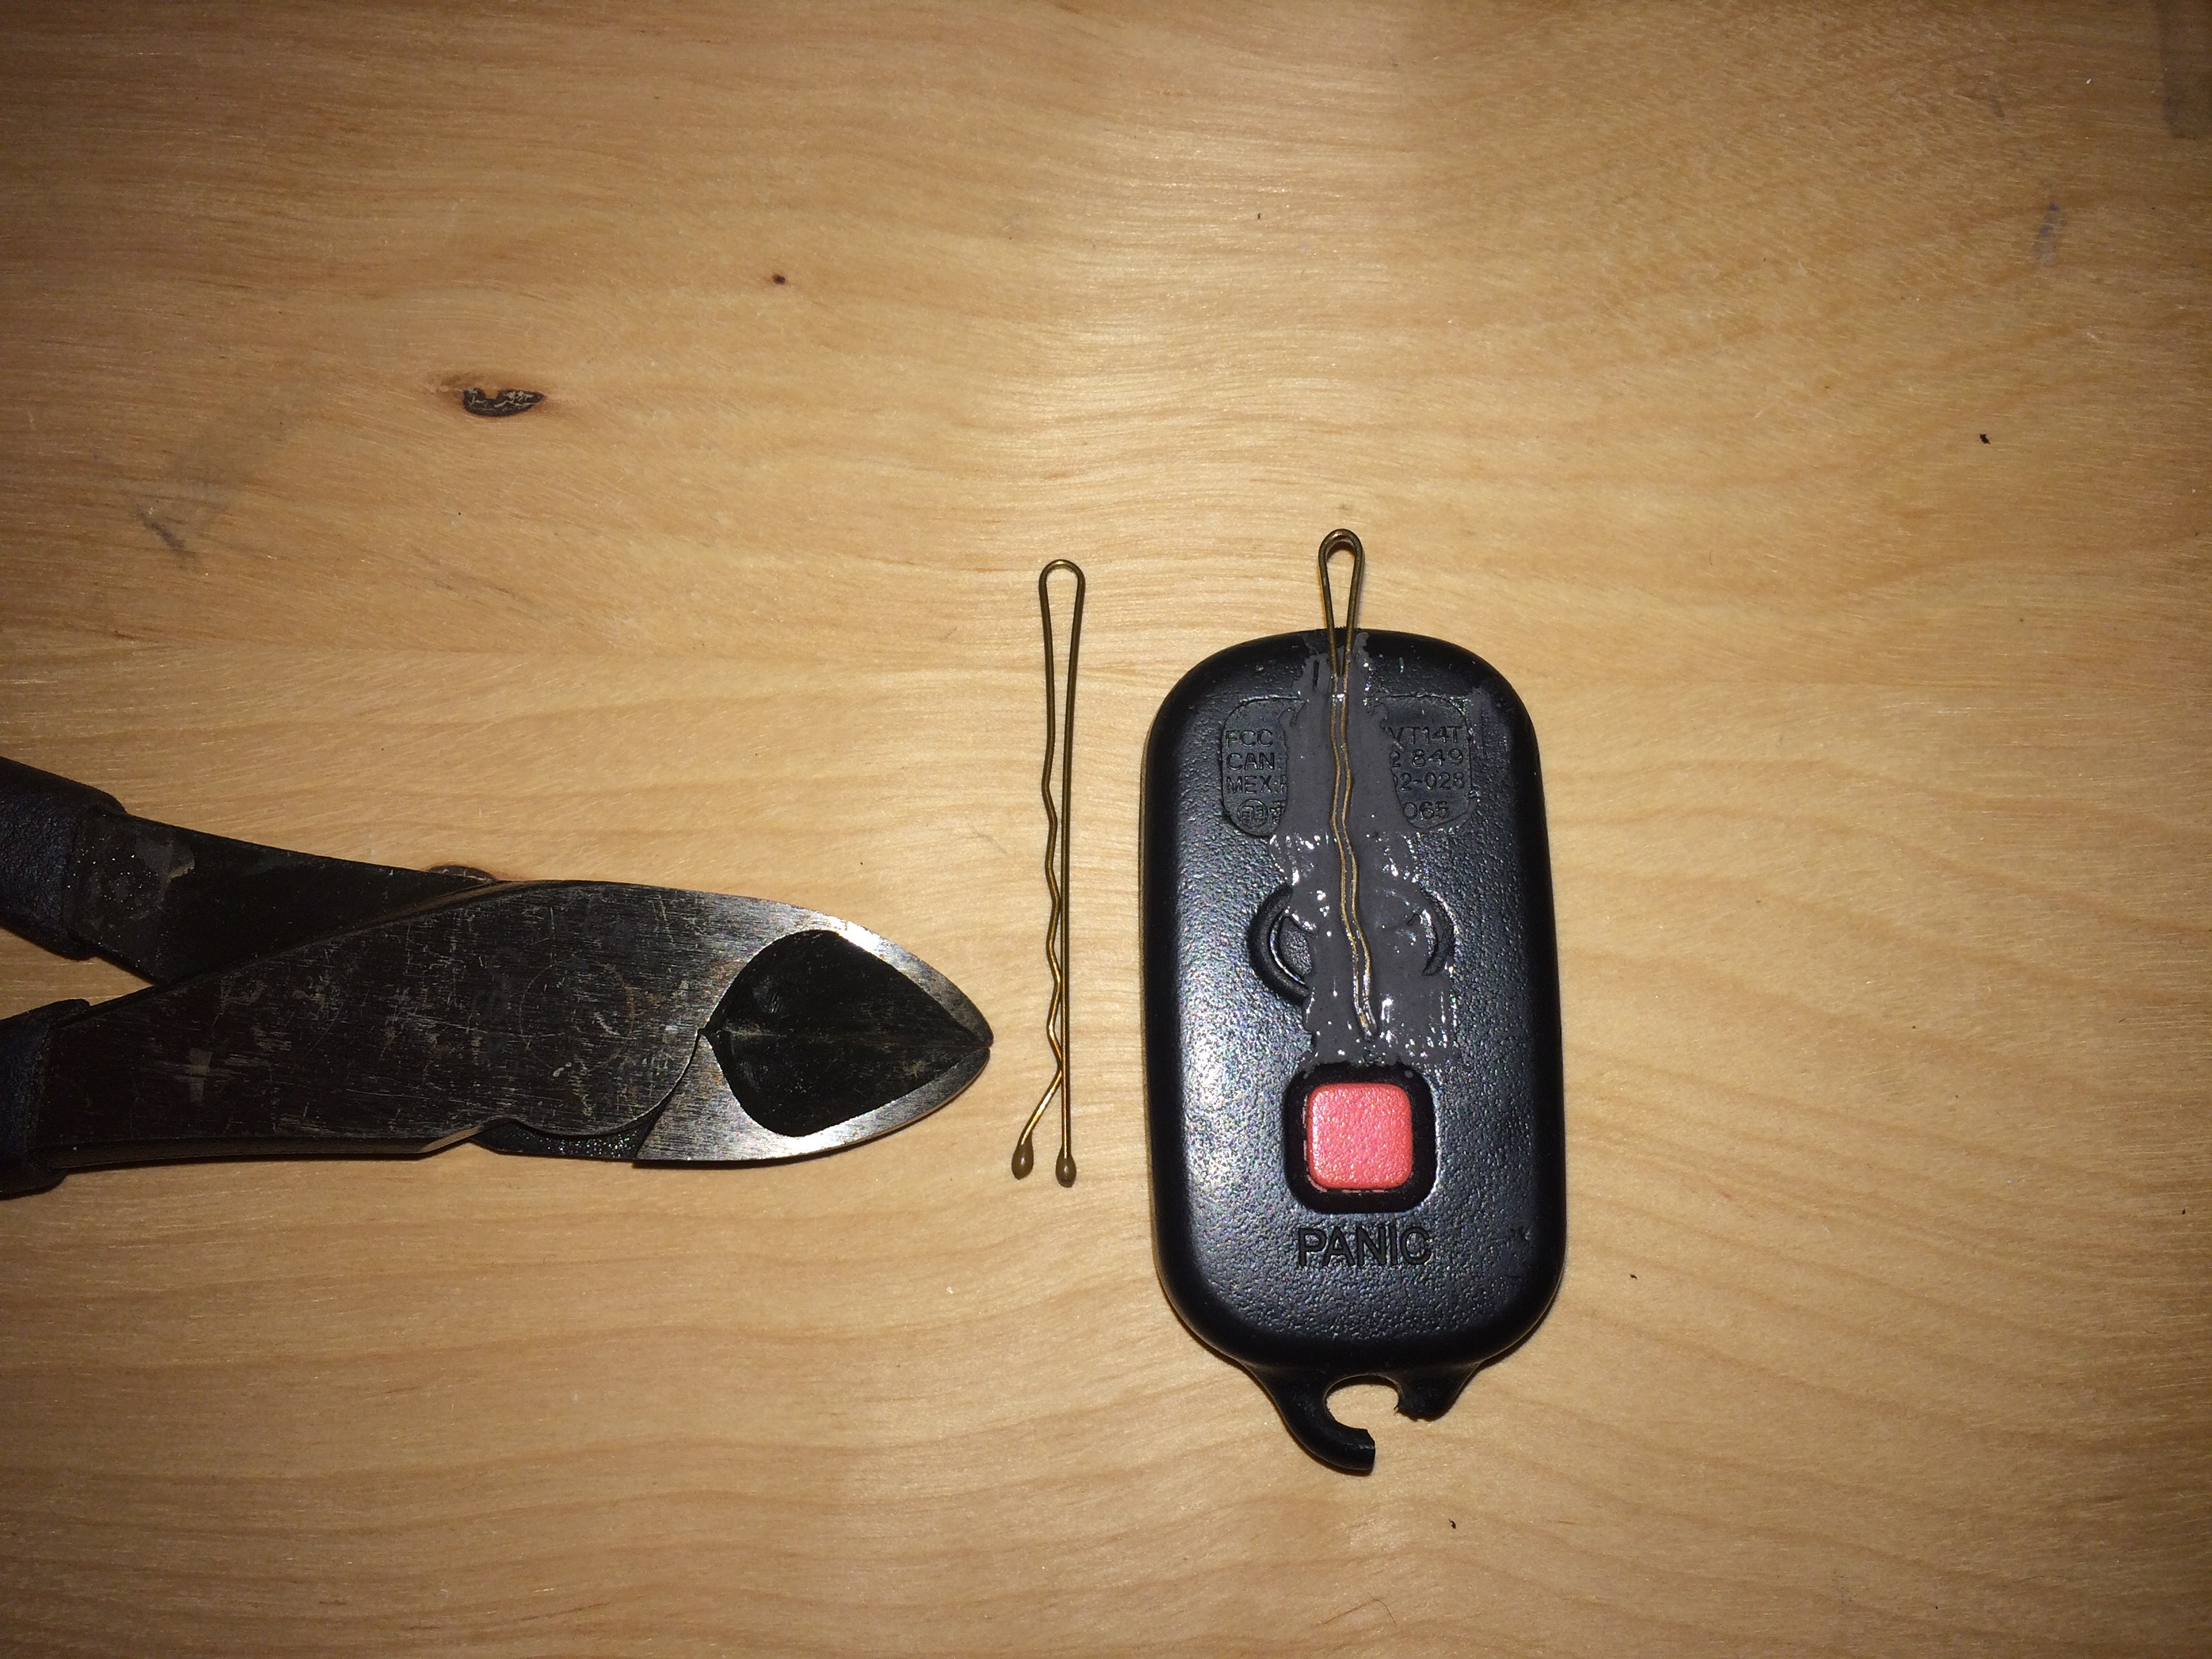 Picture of Repair a Keyfob - Failed